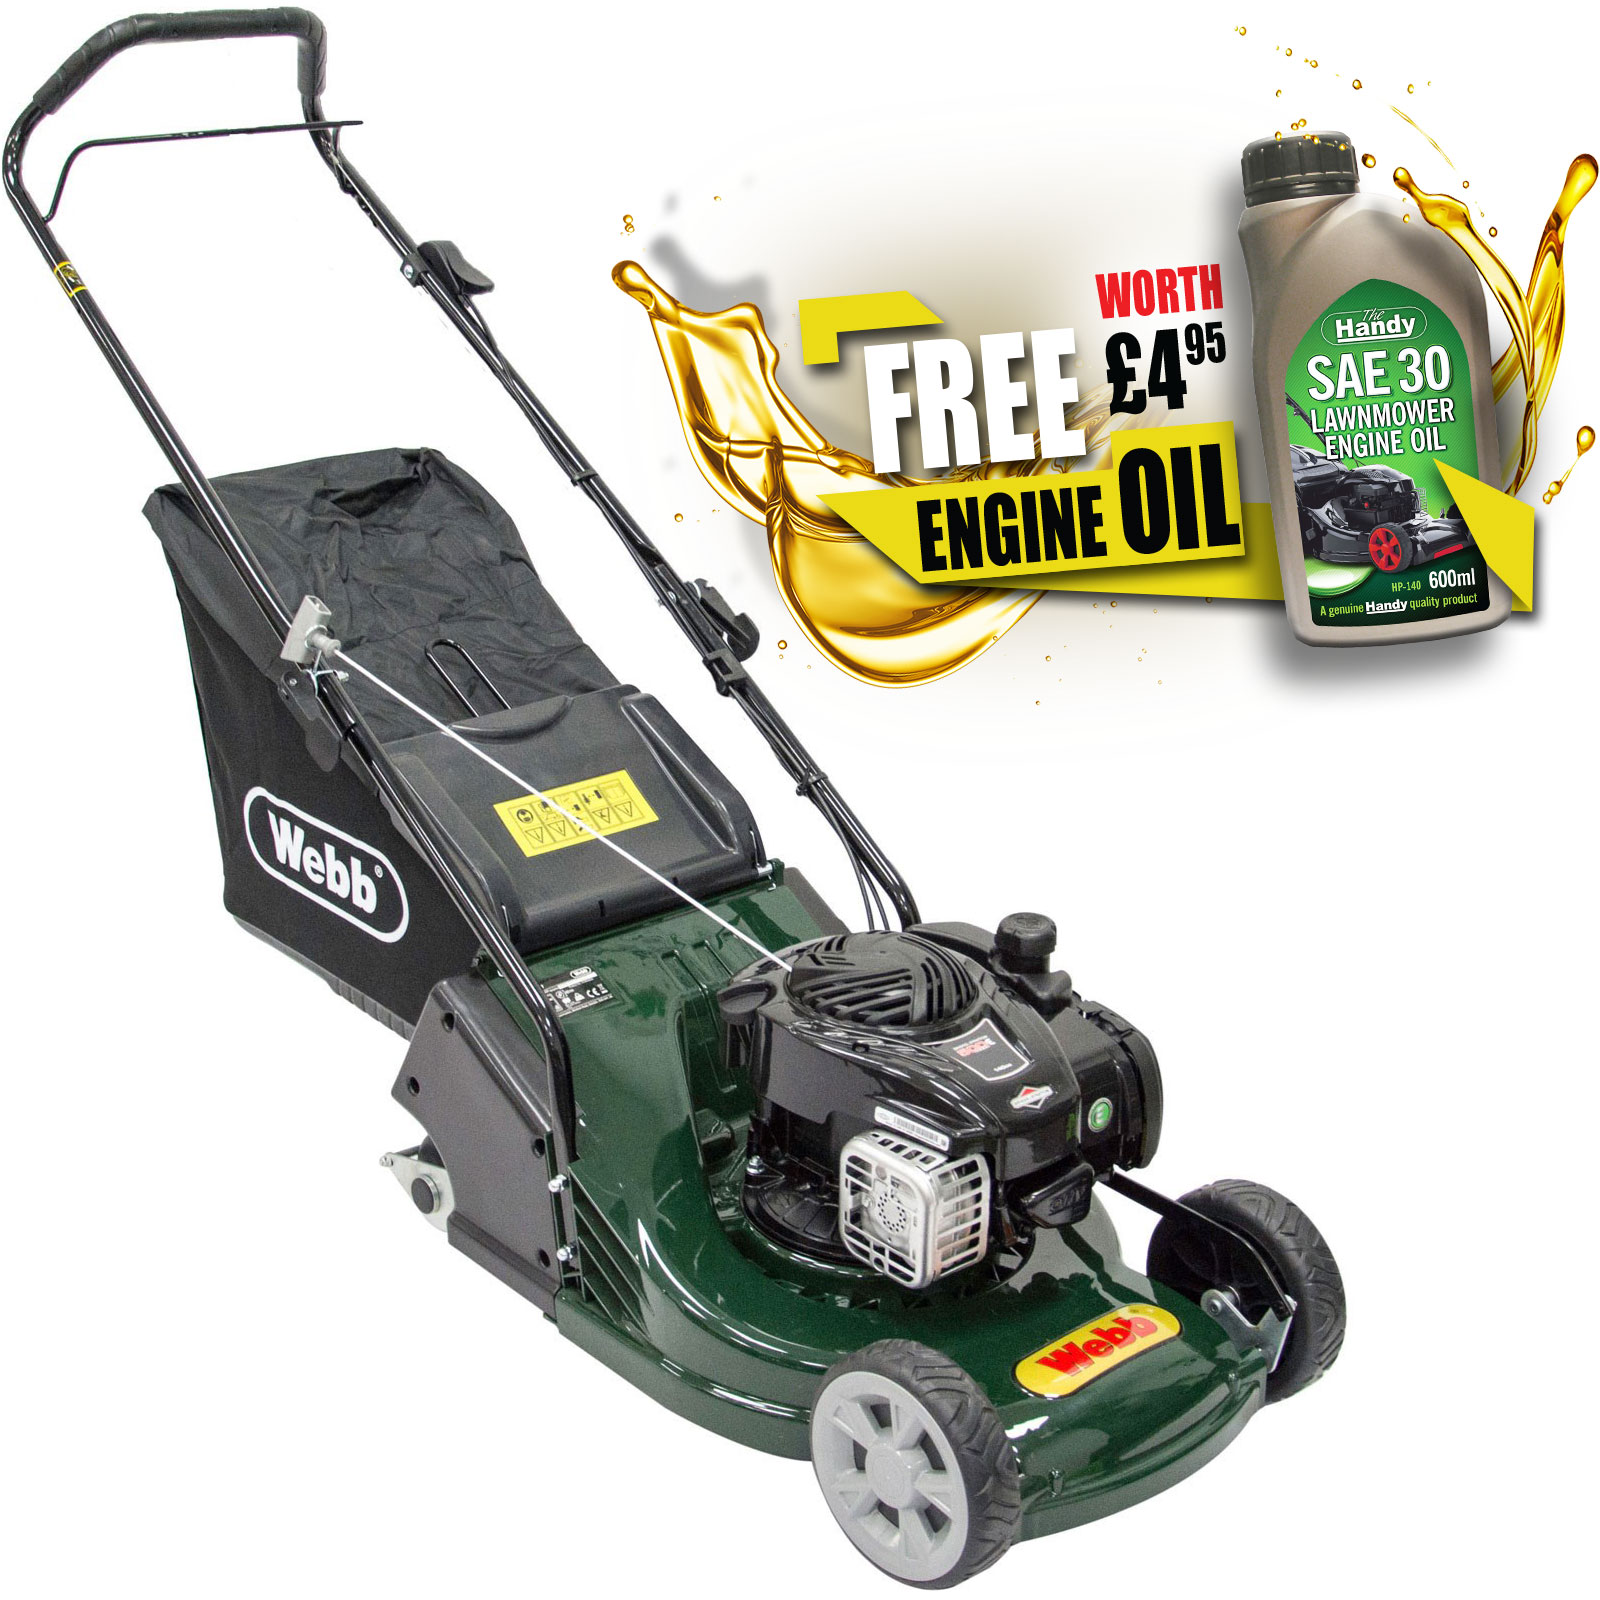 Webb WERR17P Push Petrol Rotary Lawnmower 425mm FREE Engine Oil Worth £4.95